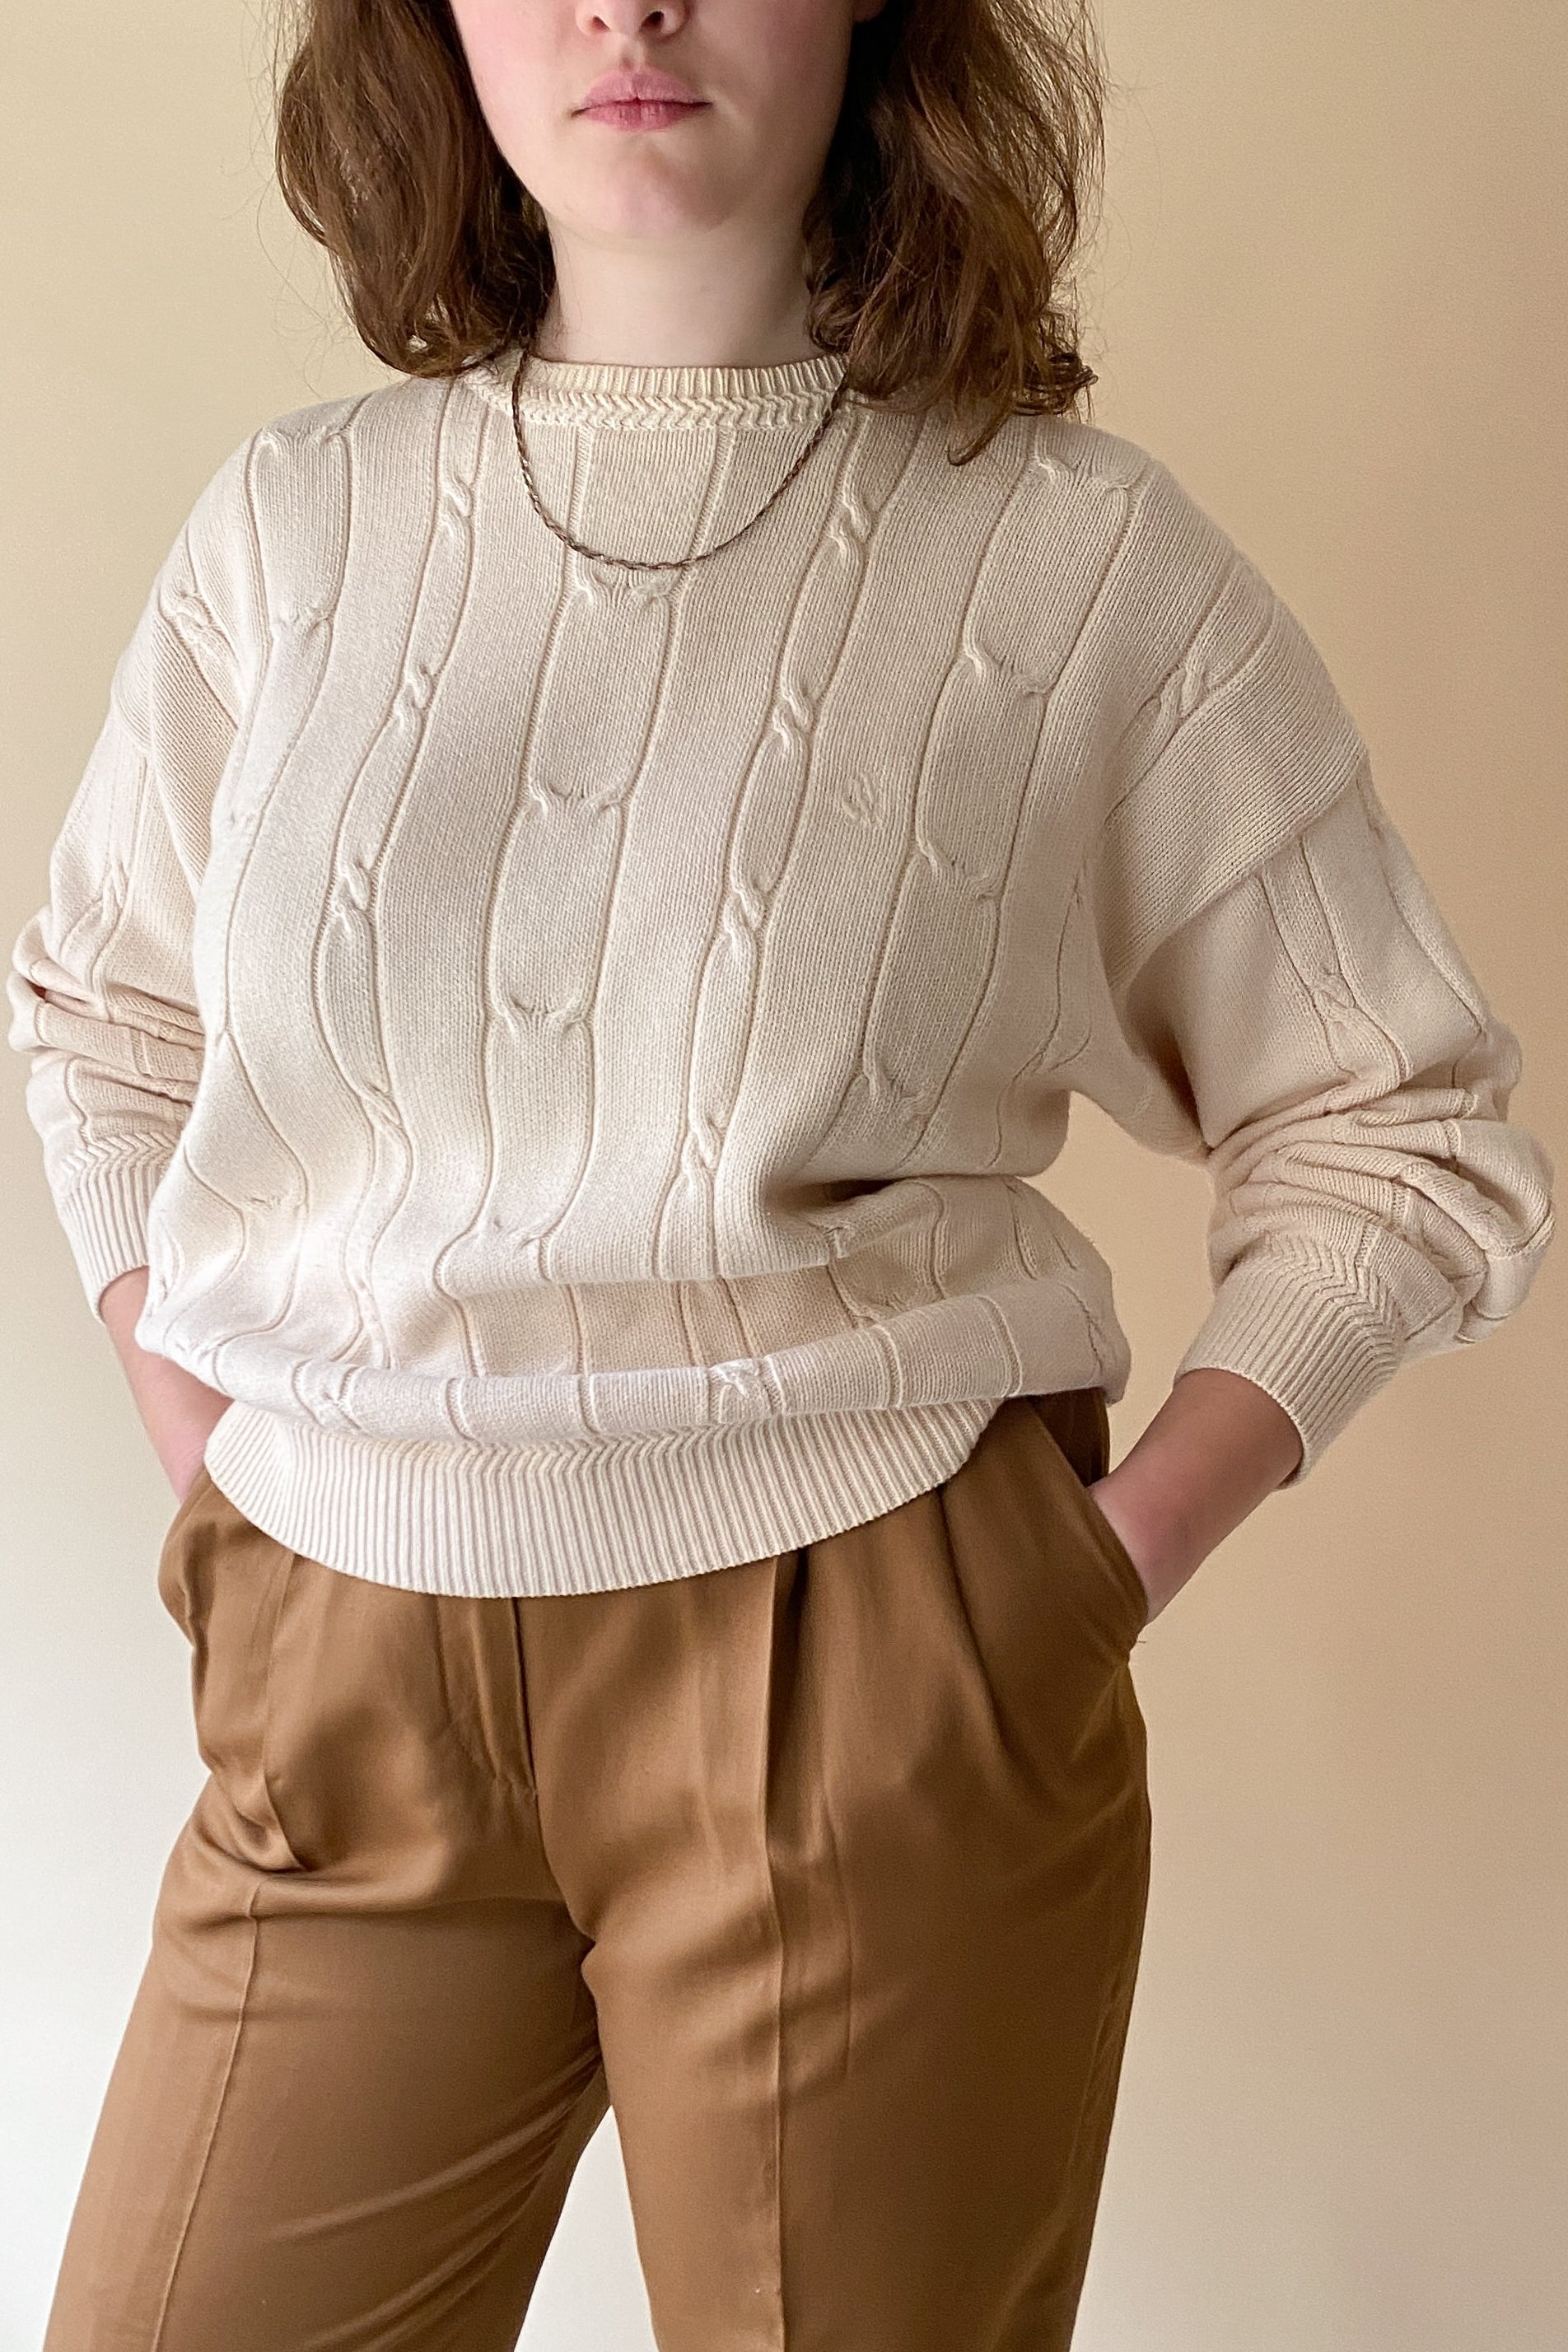 1990s Cotton Cable Knit Sweater